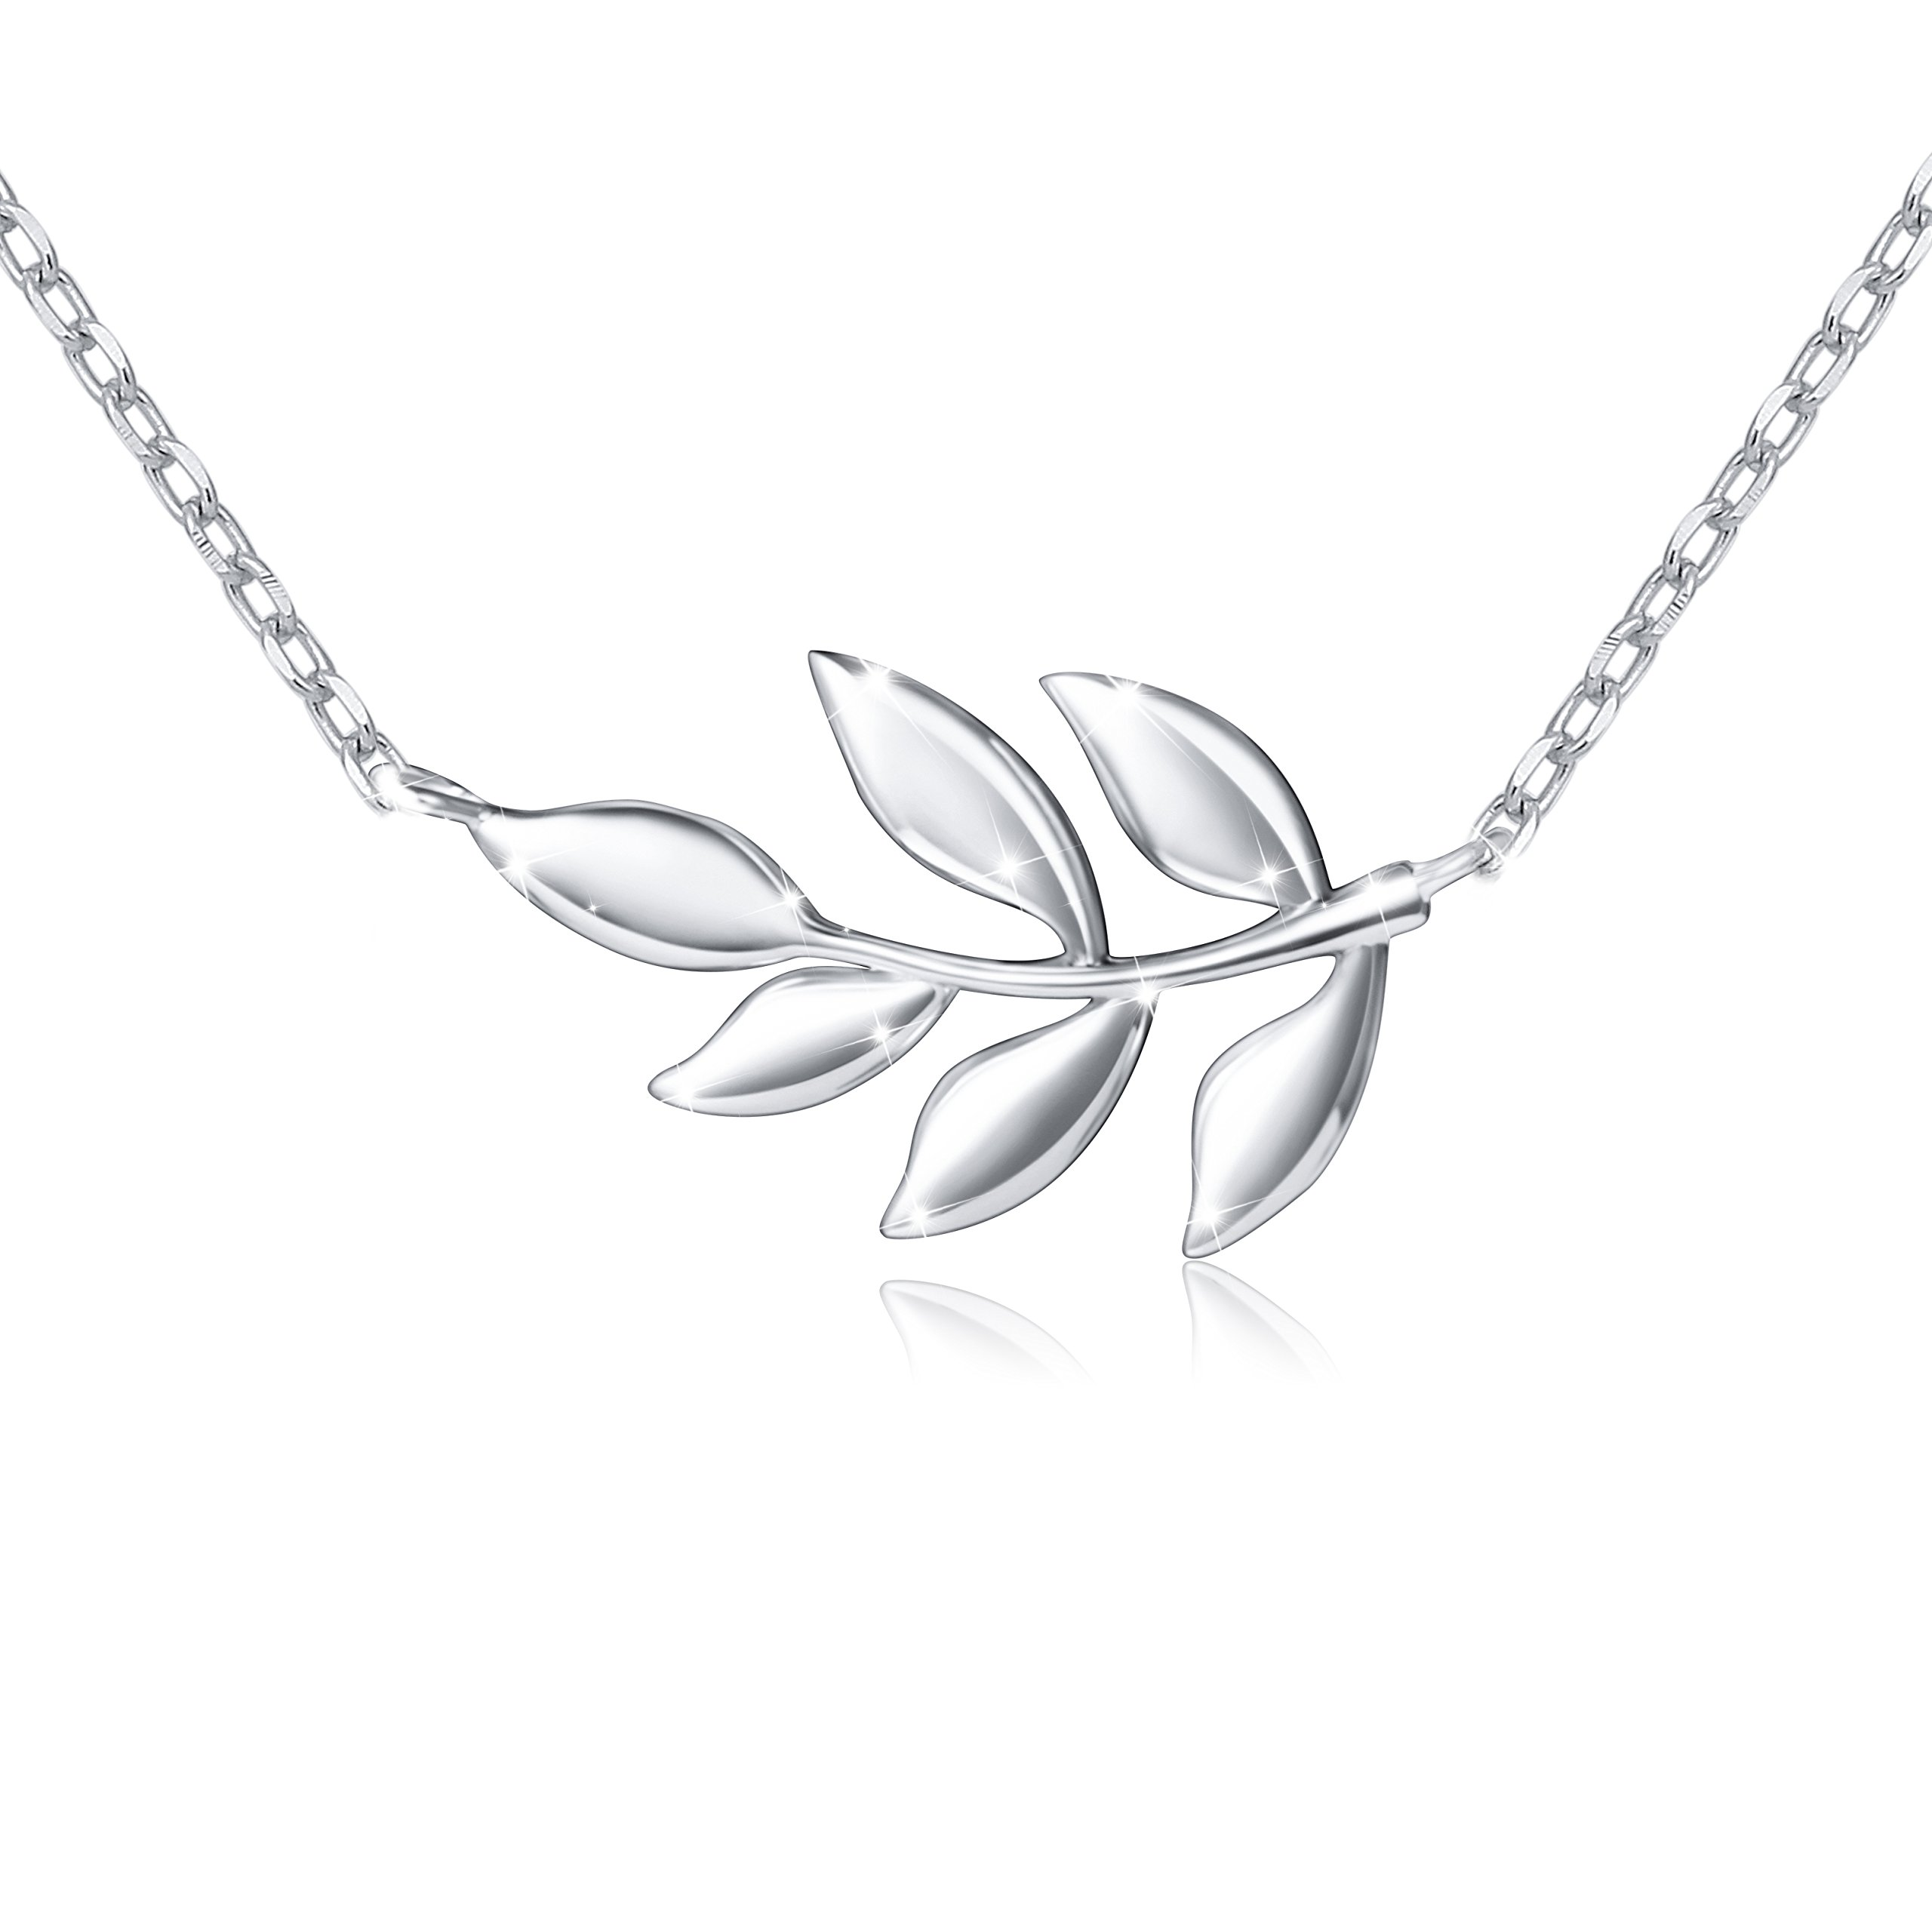 S925 Sterling Silver Olive Leaf Necklace for Women Lady, 18'' Rolo Chain